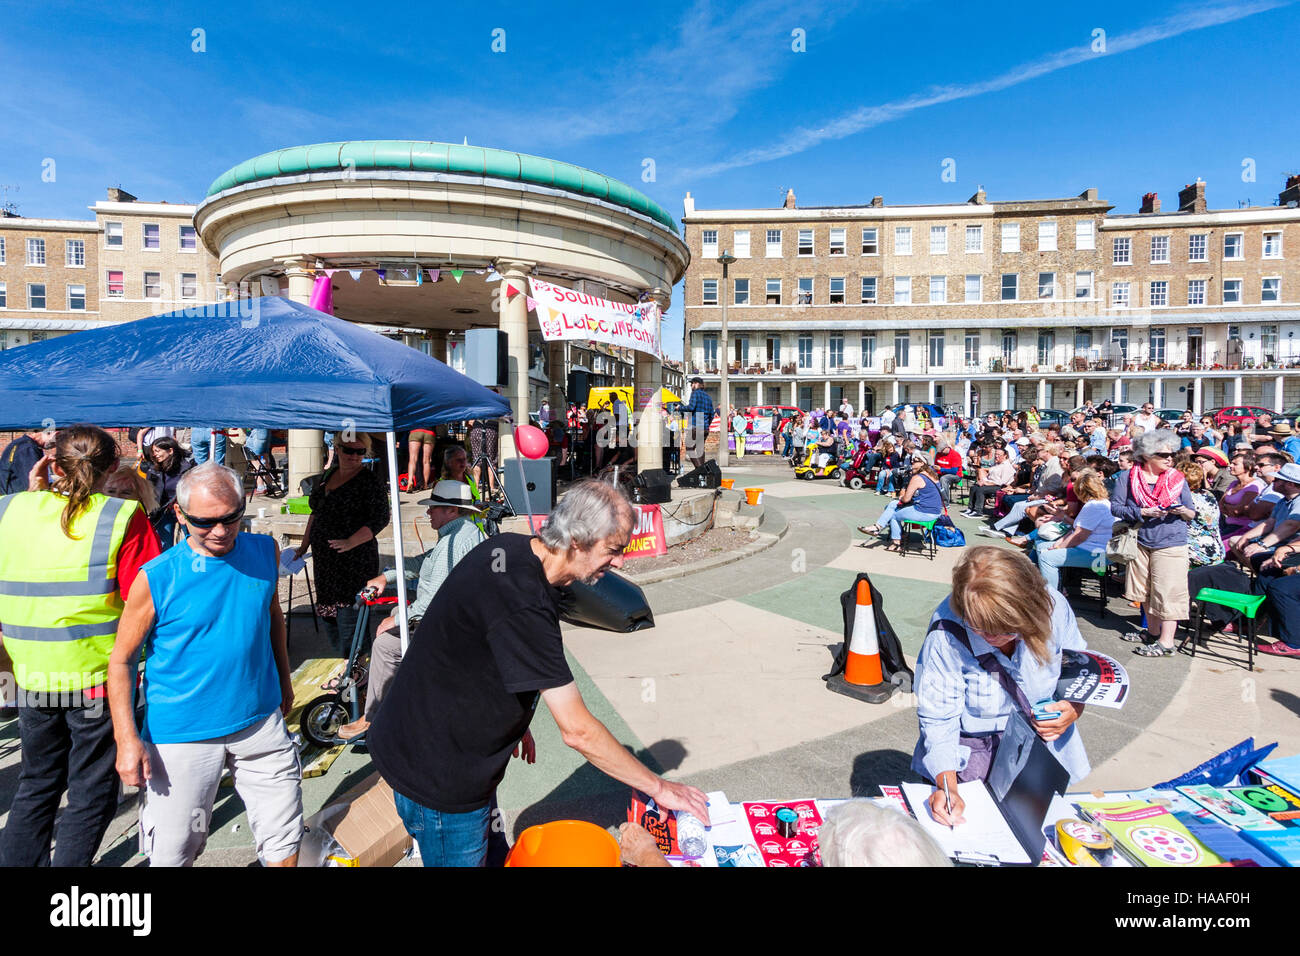 Jeremy Corbyn Momentum rally. Woman signing petition document at table. Background crowds and bandstand on the seafront - Stock Image